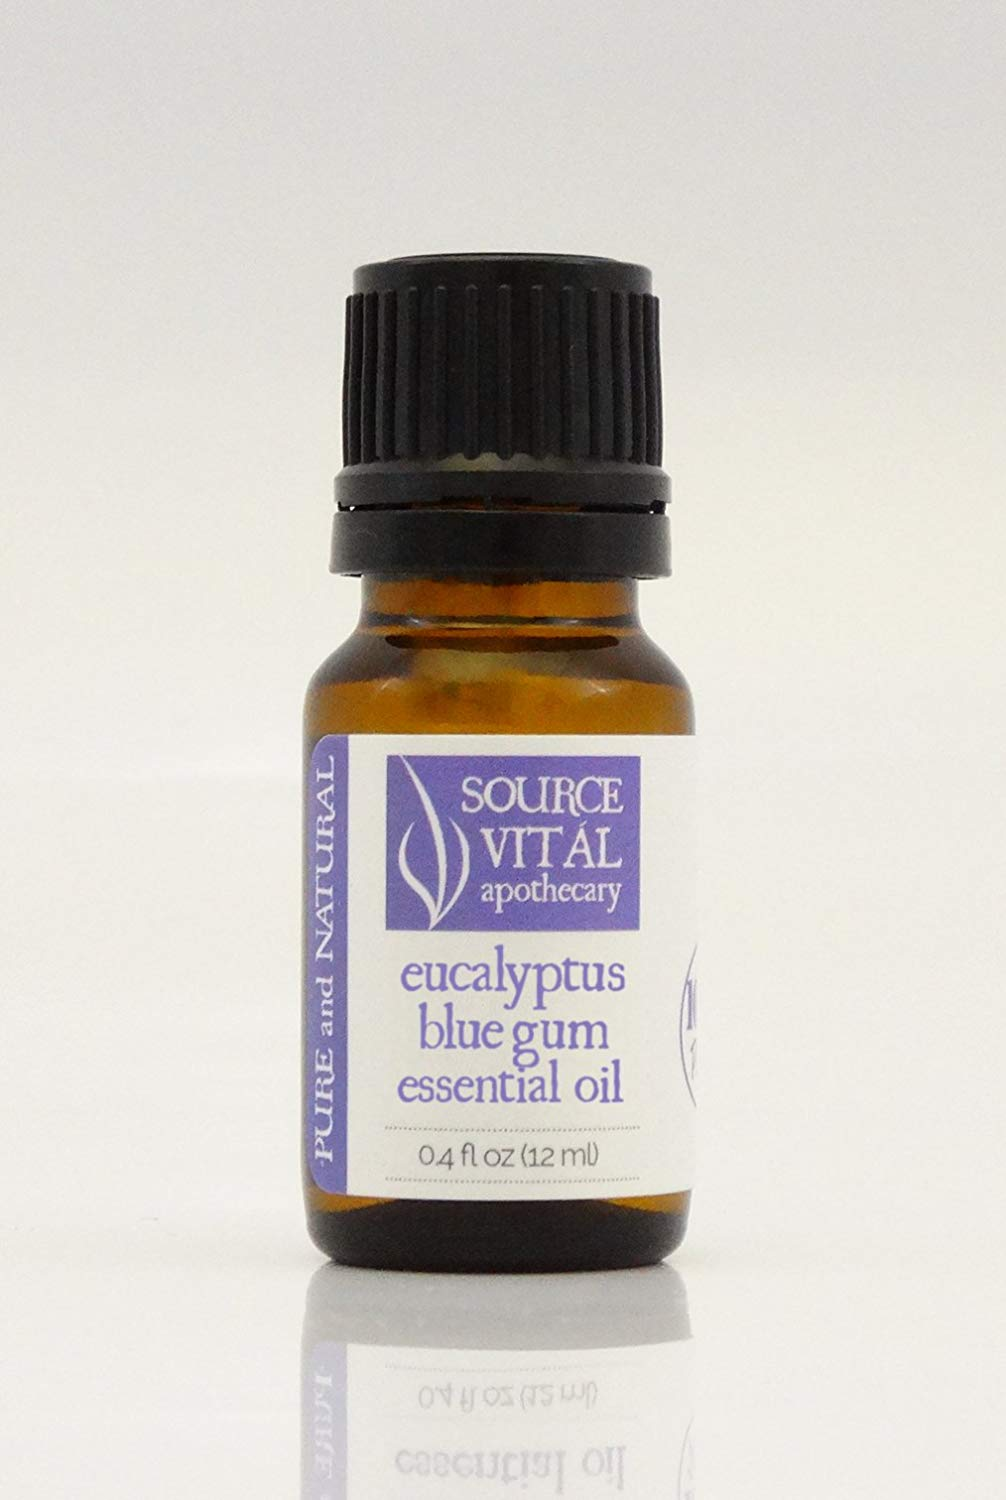 Source Vitál Apothecary 100% Pure and Natural Eucalyptus Blue Gum Essential Oil